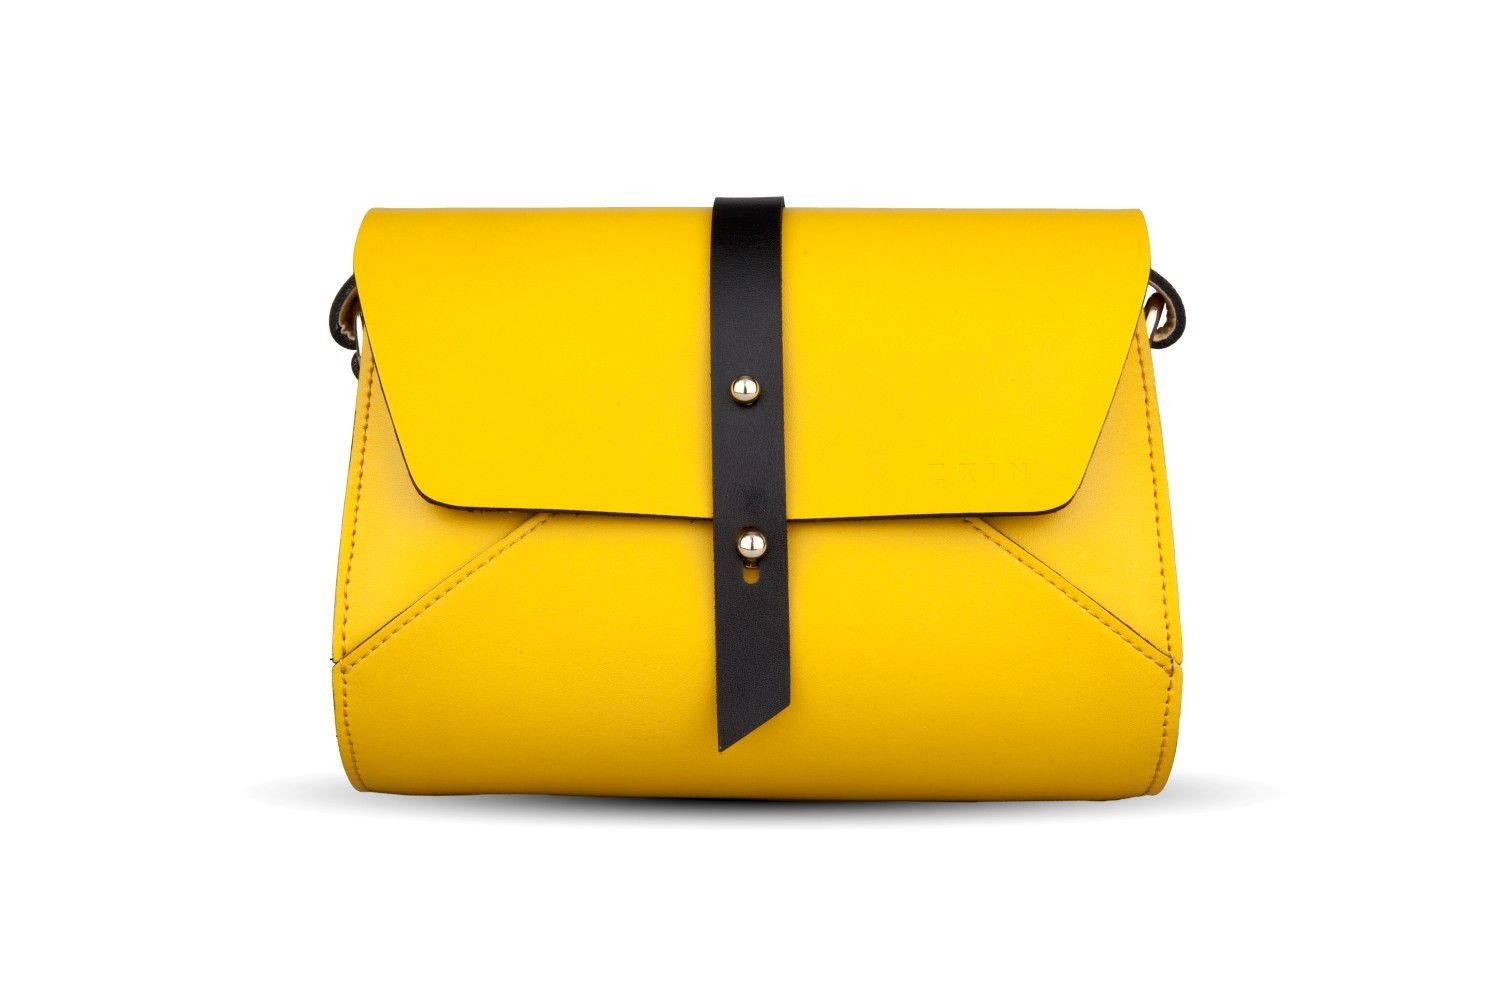 Borsa Zkin Harpy Lemon Yellow